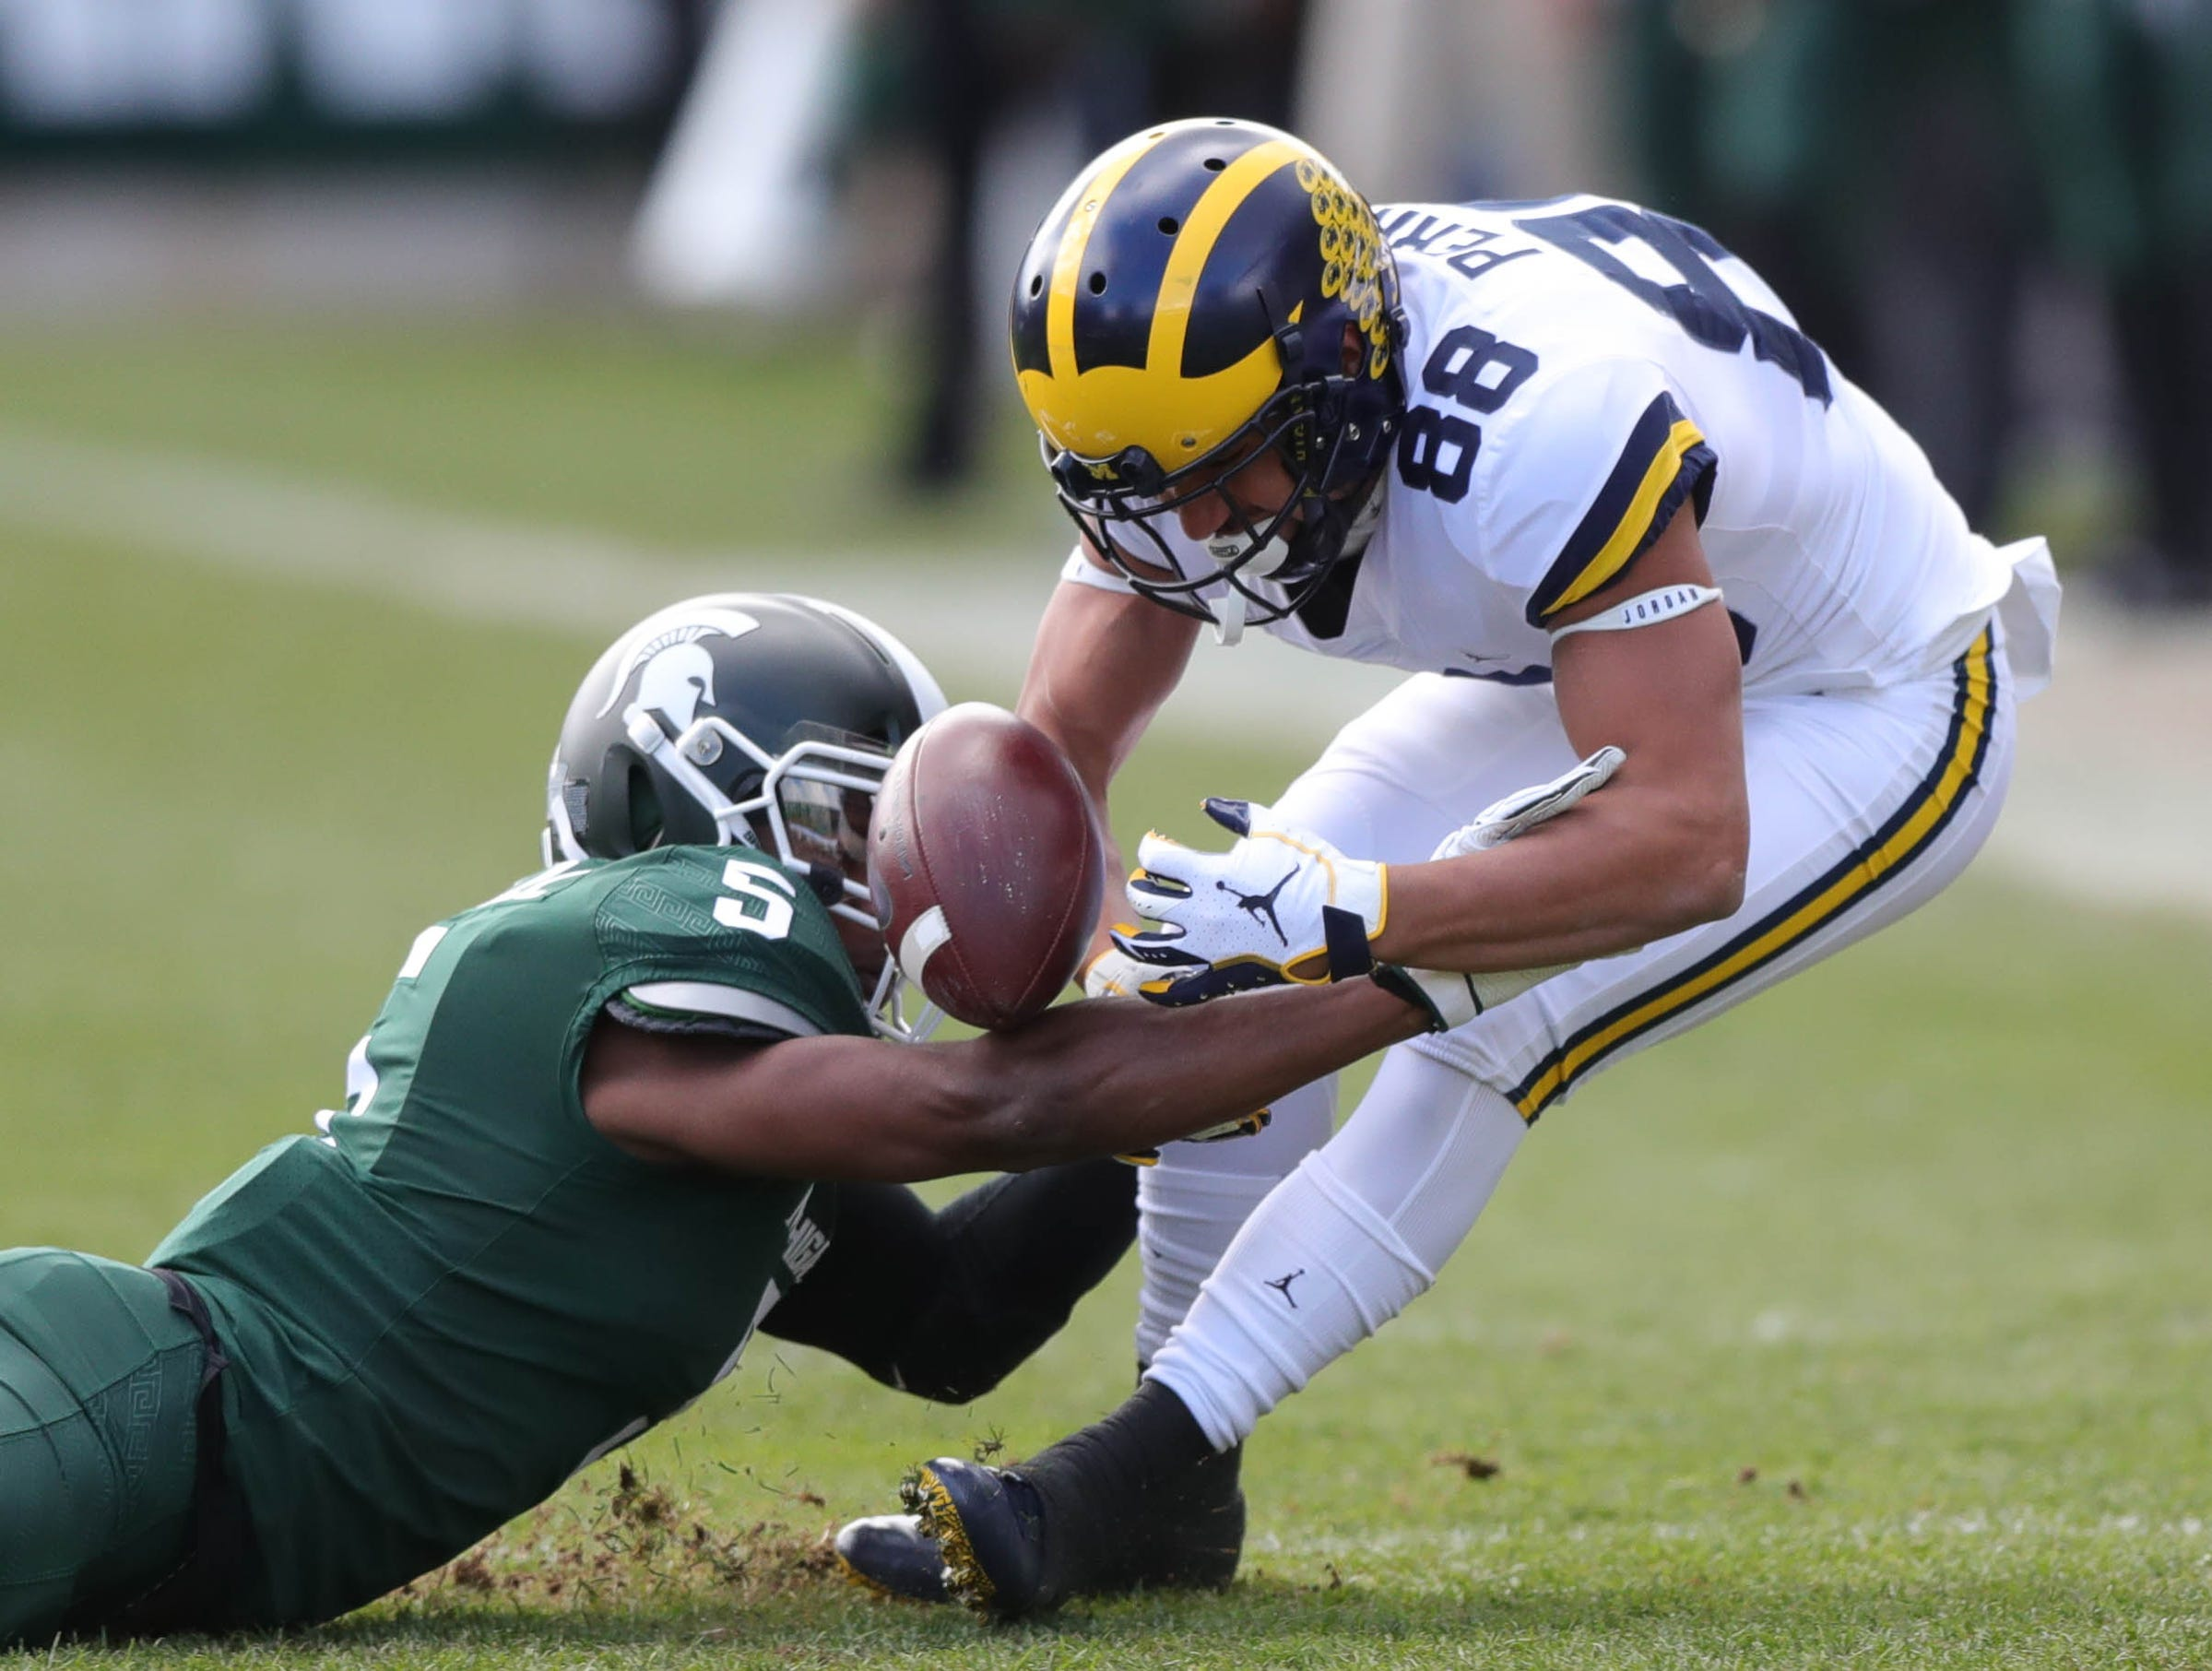 Michigan wide receiver Grant Perry is defended by Michigan State's Andrew Dowell during the first half on Saturday, Oct. 20, 2018, at Spartan Stadium.